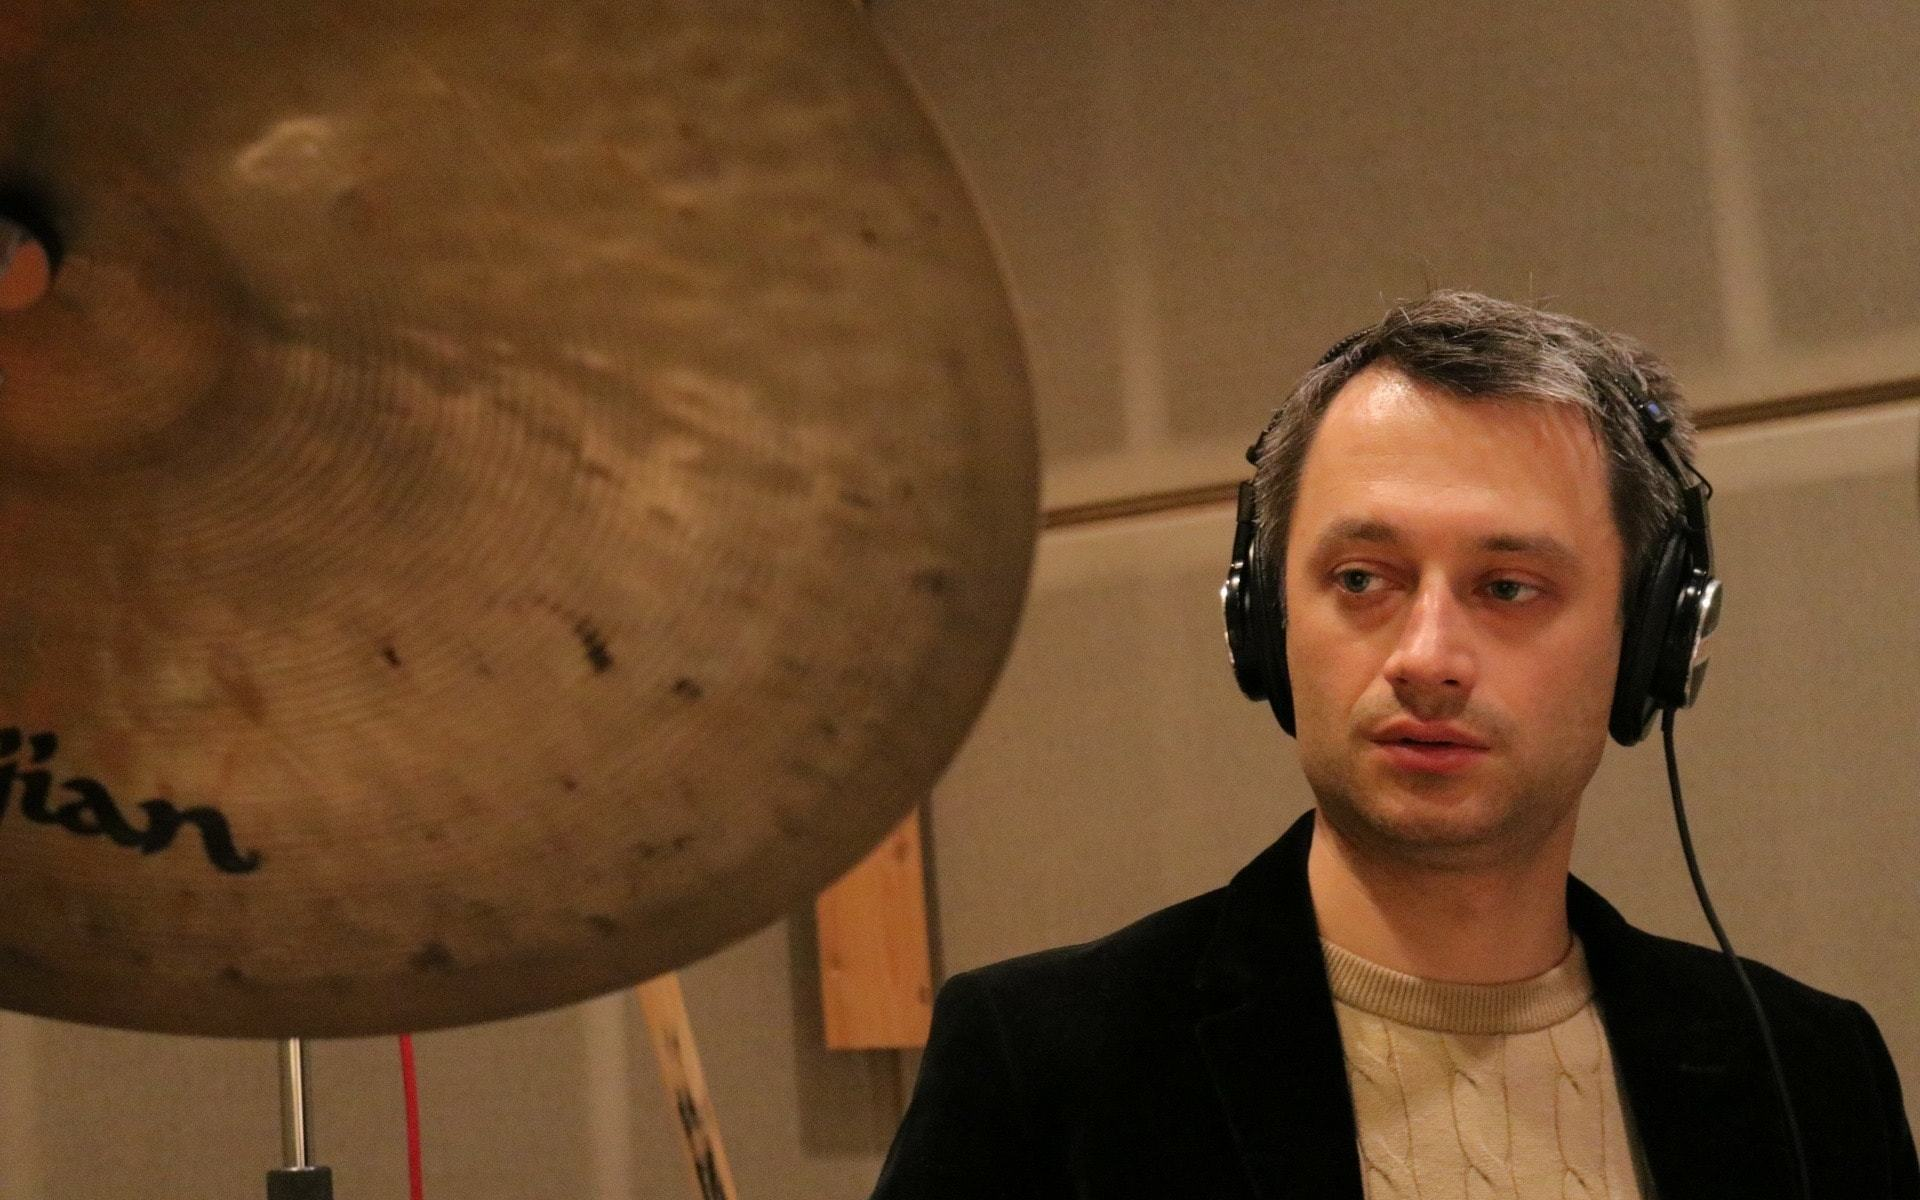 Dennis Frehse is recording drums in a studio session and is wearing Sony headphones.